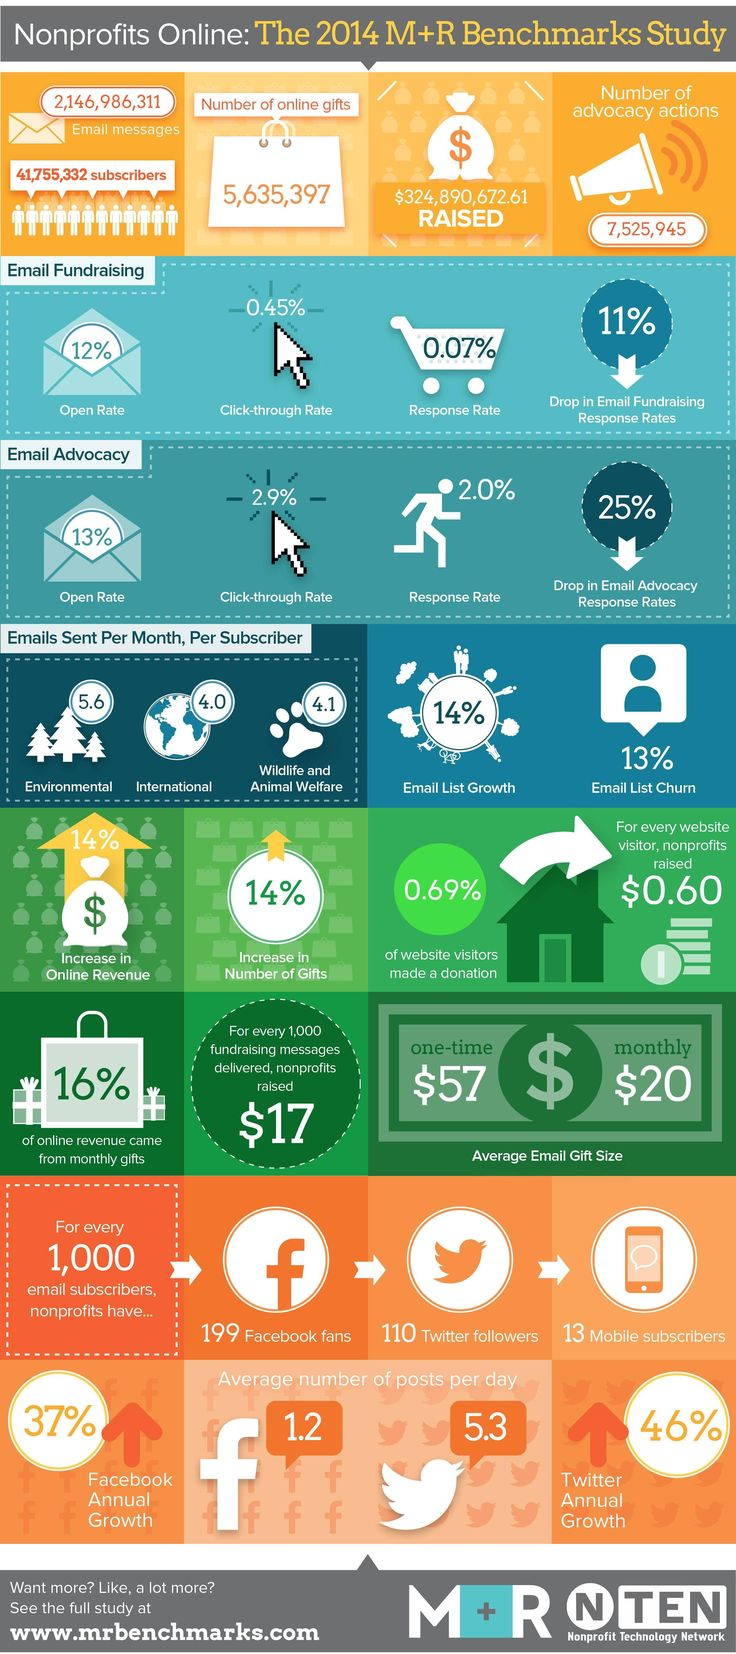 Nonprofits reached more people via online channels + raised 14% more online in 2013  #onlinegiving #infographic #fundraising